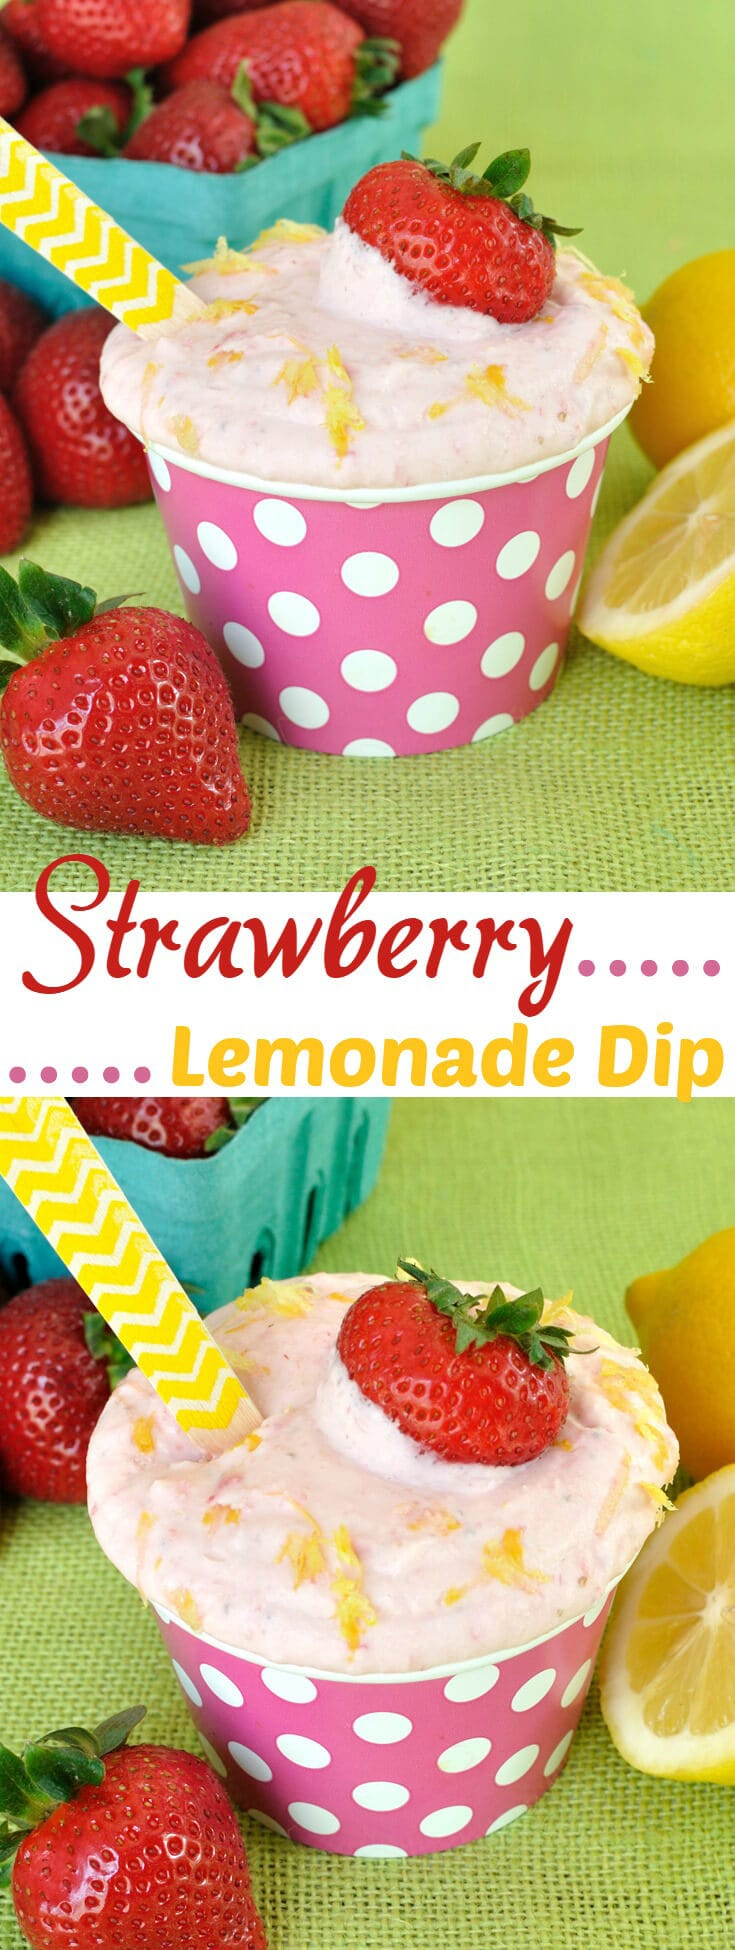 Strawberry Lemonade Dip- An easy fruit dip recipe with the sweet flavor of strawberries and the tart flavor of lemon. A great summer dessert or snack.